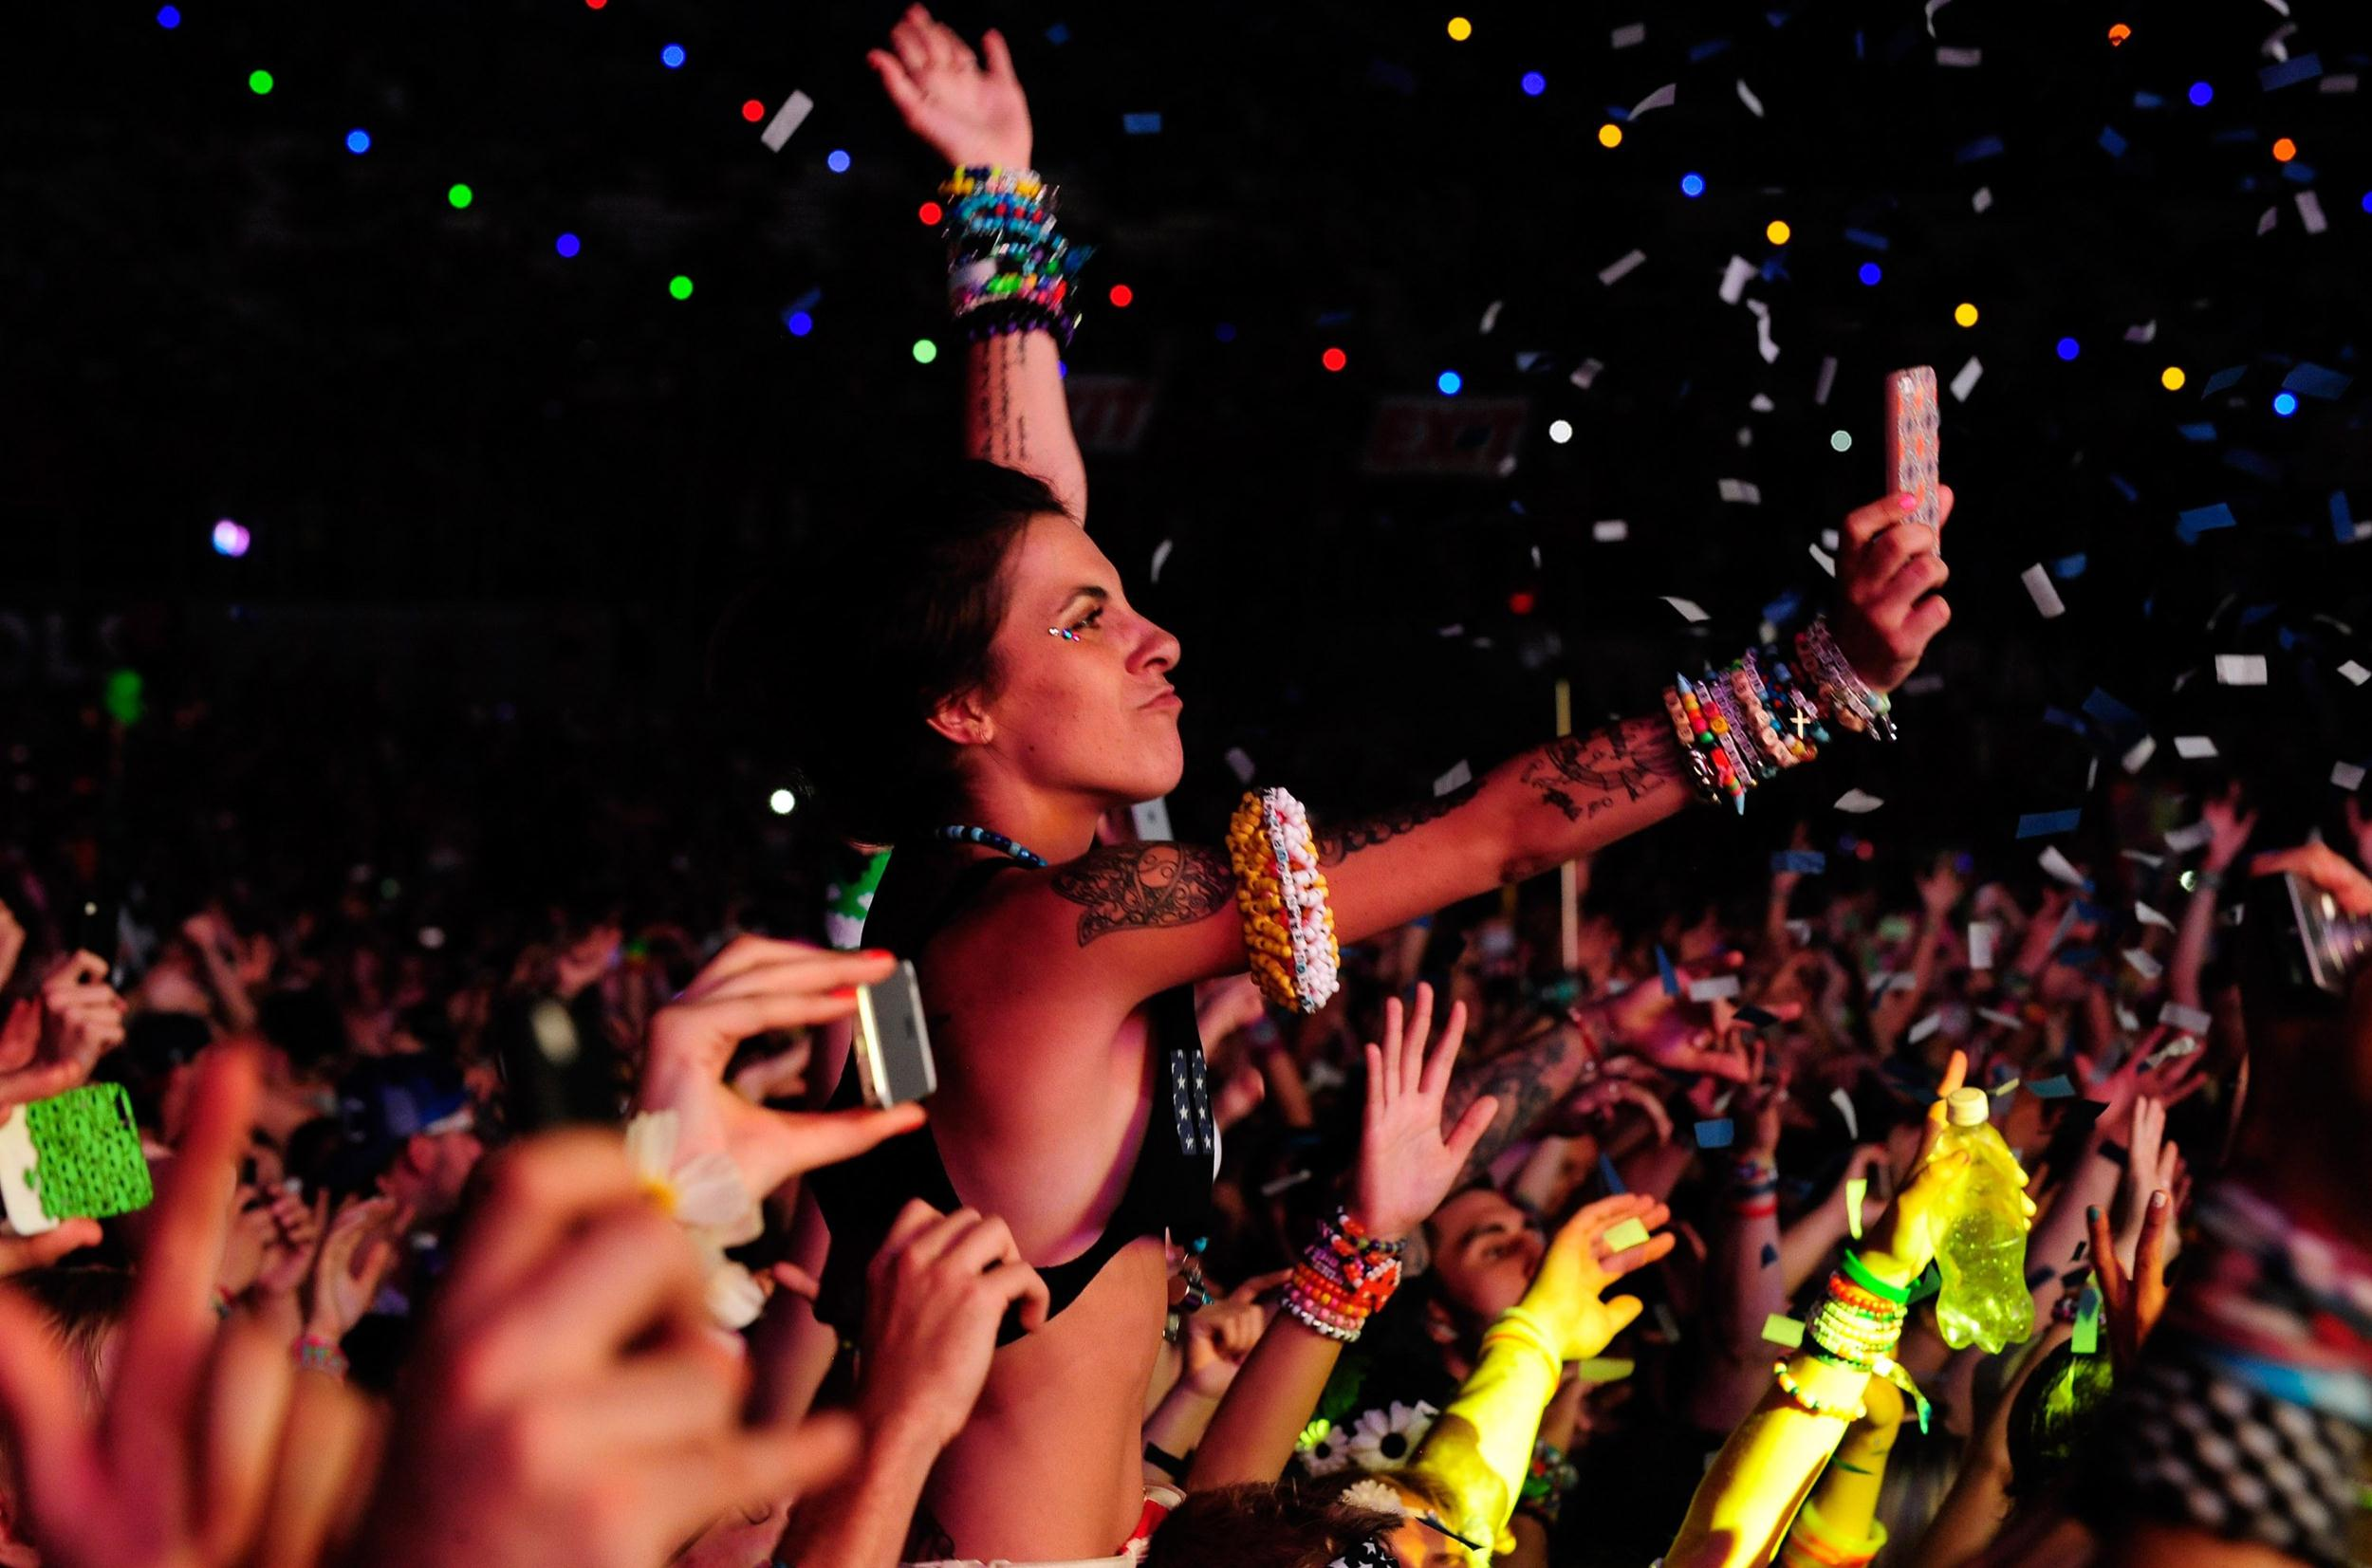 Image: 18th Annual Electric Daisy Carnival - Day 3